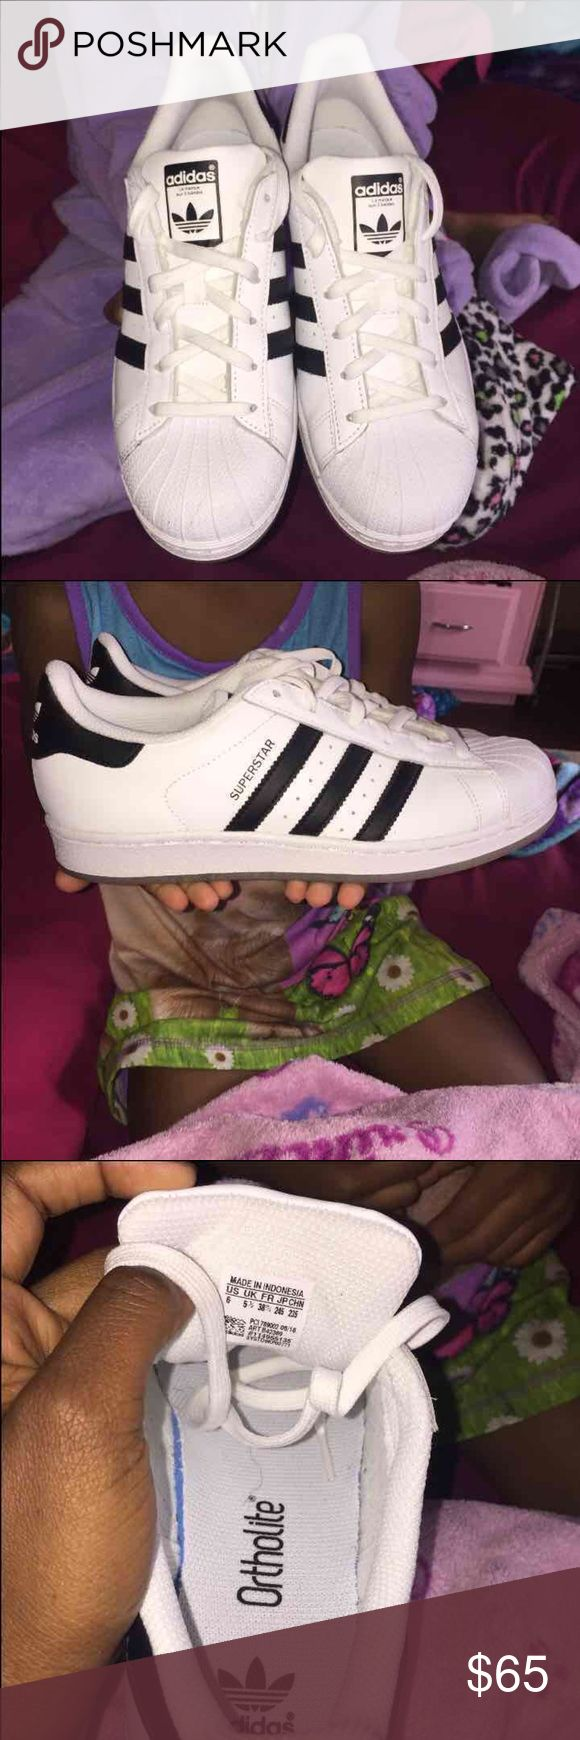 Original Adidas superstar - Size 6 men's/ 7.5 women's  - Worn once - no signs of wear and tear at all - Retail for $80 plus tax  * will include the box and all original packaging Adidas Shoes Sneakers